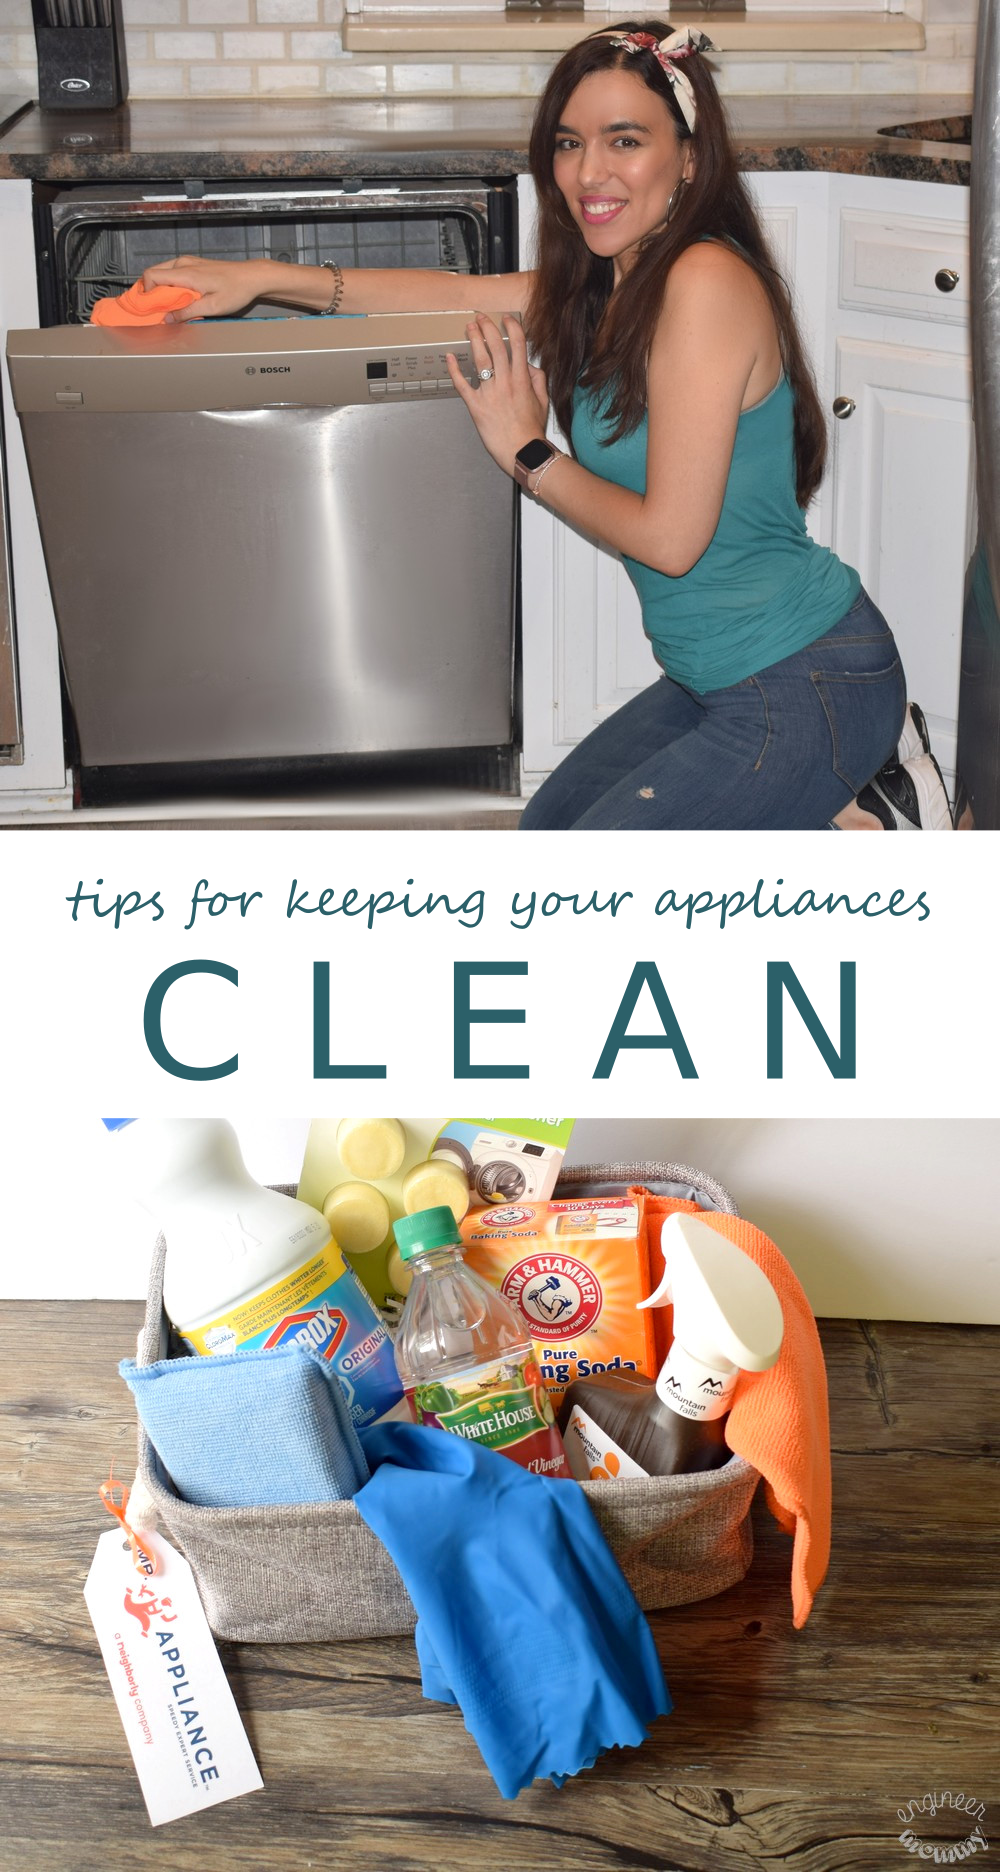 Tips for Keeping Appliances Clean